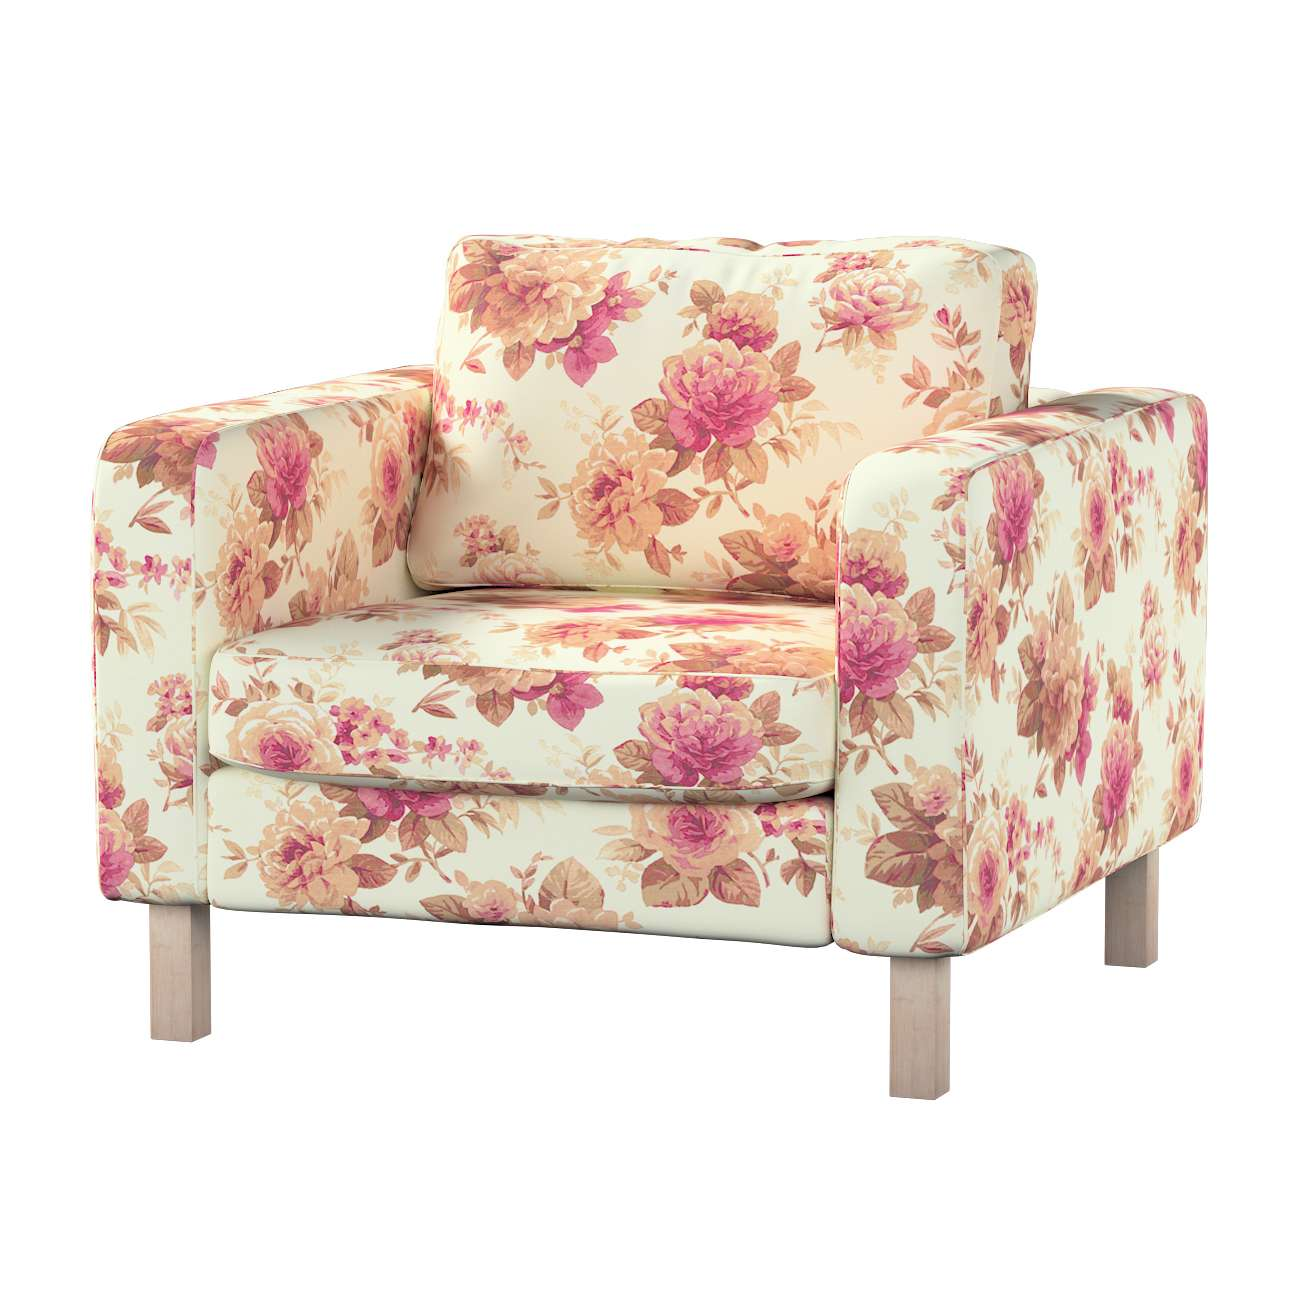 Karlstad armchair cover in collection Mirella, fabric: 141-06